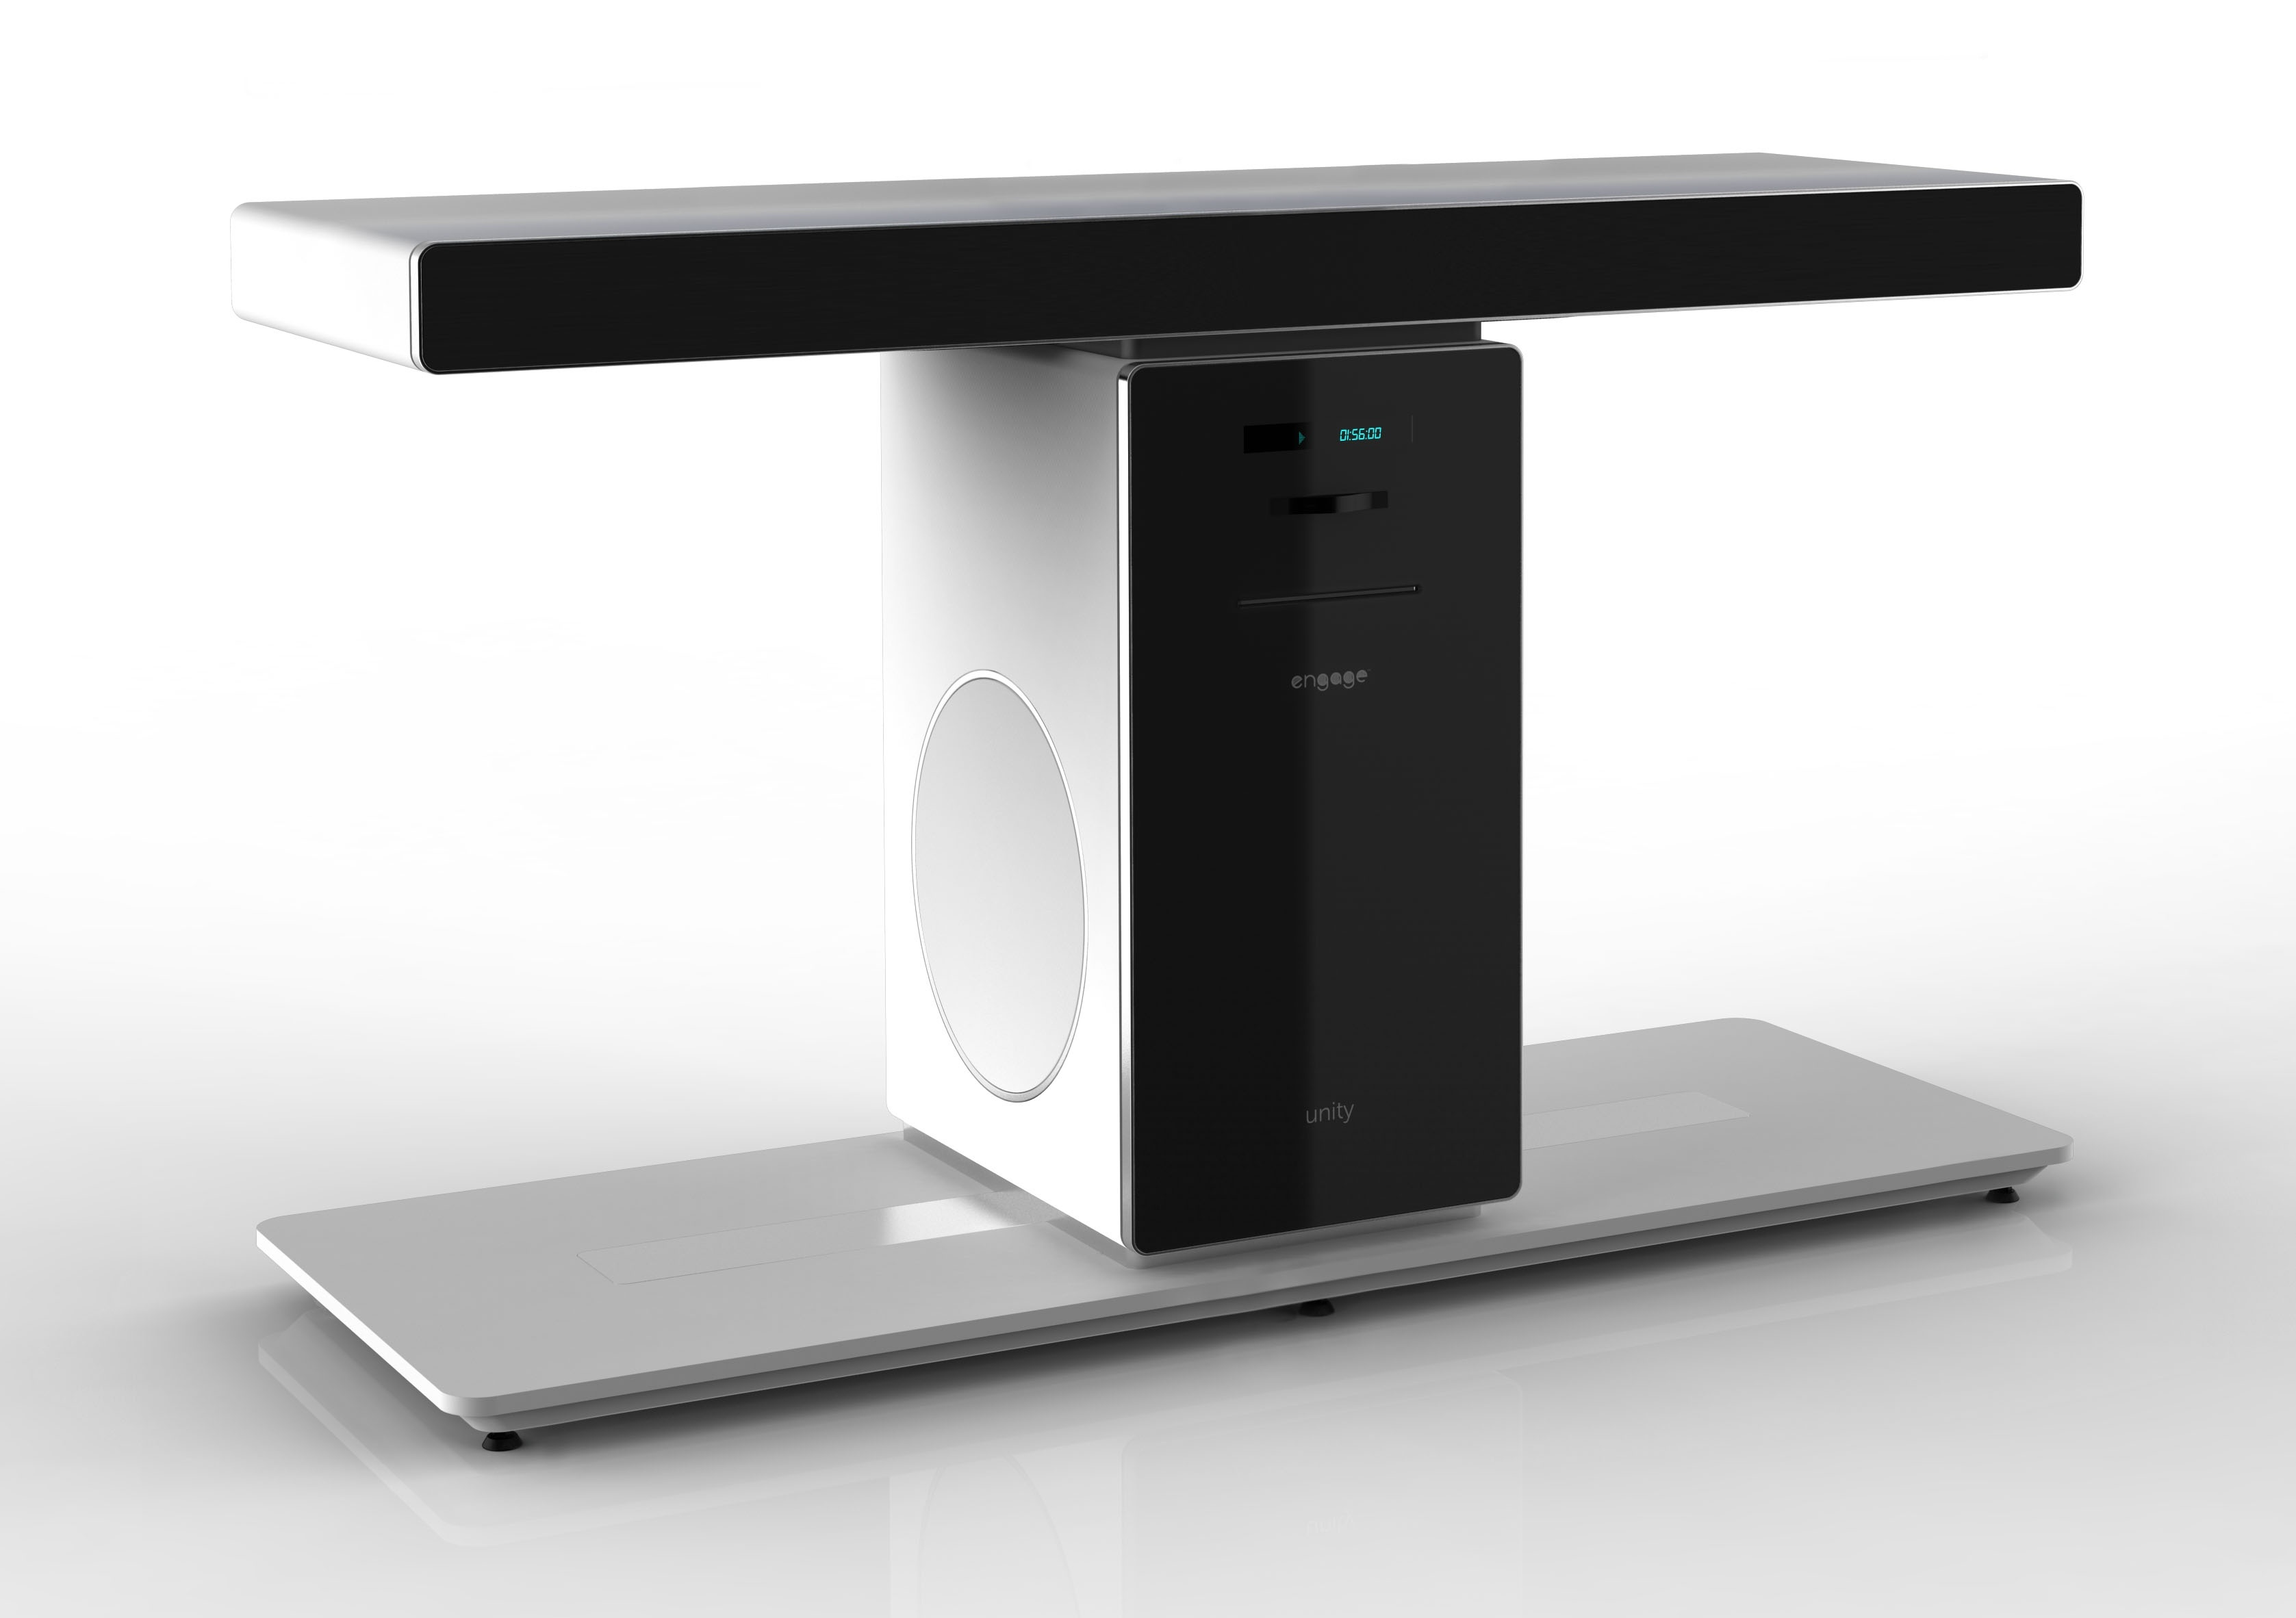 Unity Home Theater System, Minimalism in Living Room | Trendy Gadget